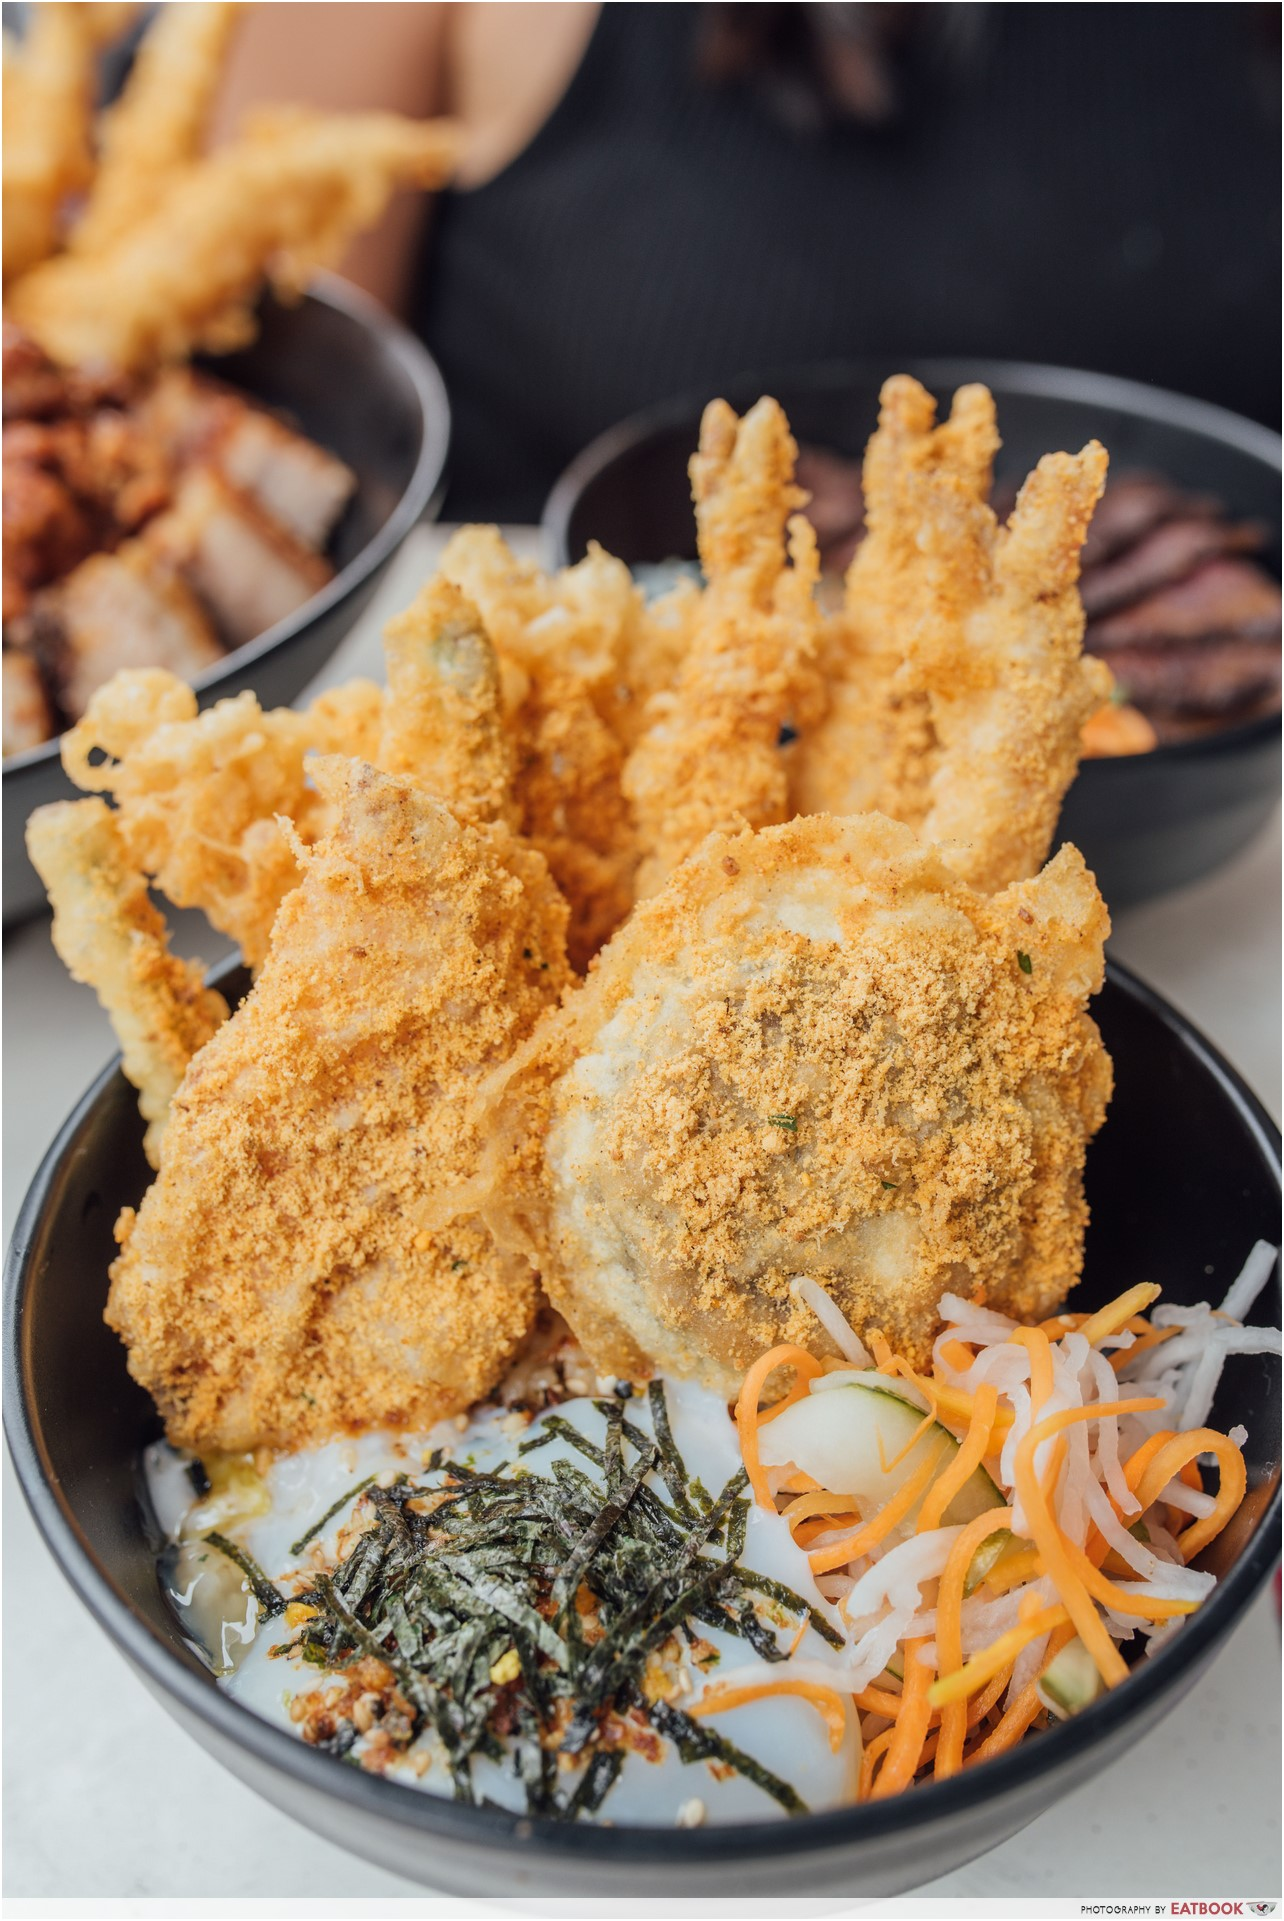 affordable tempura don - don